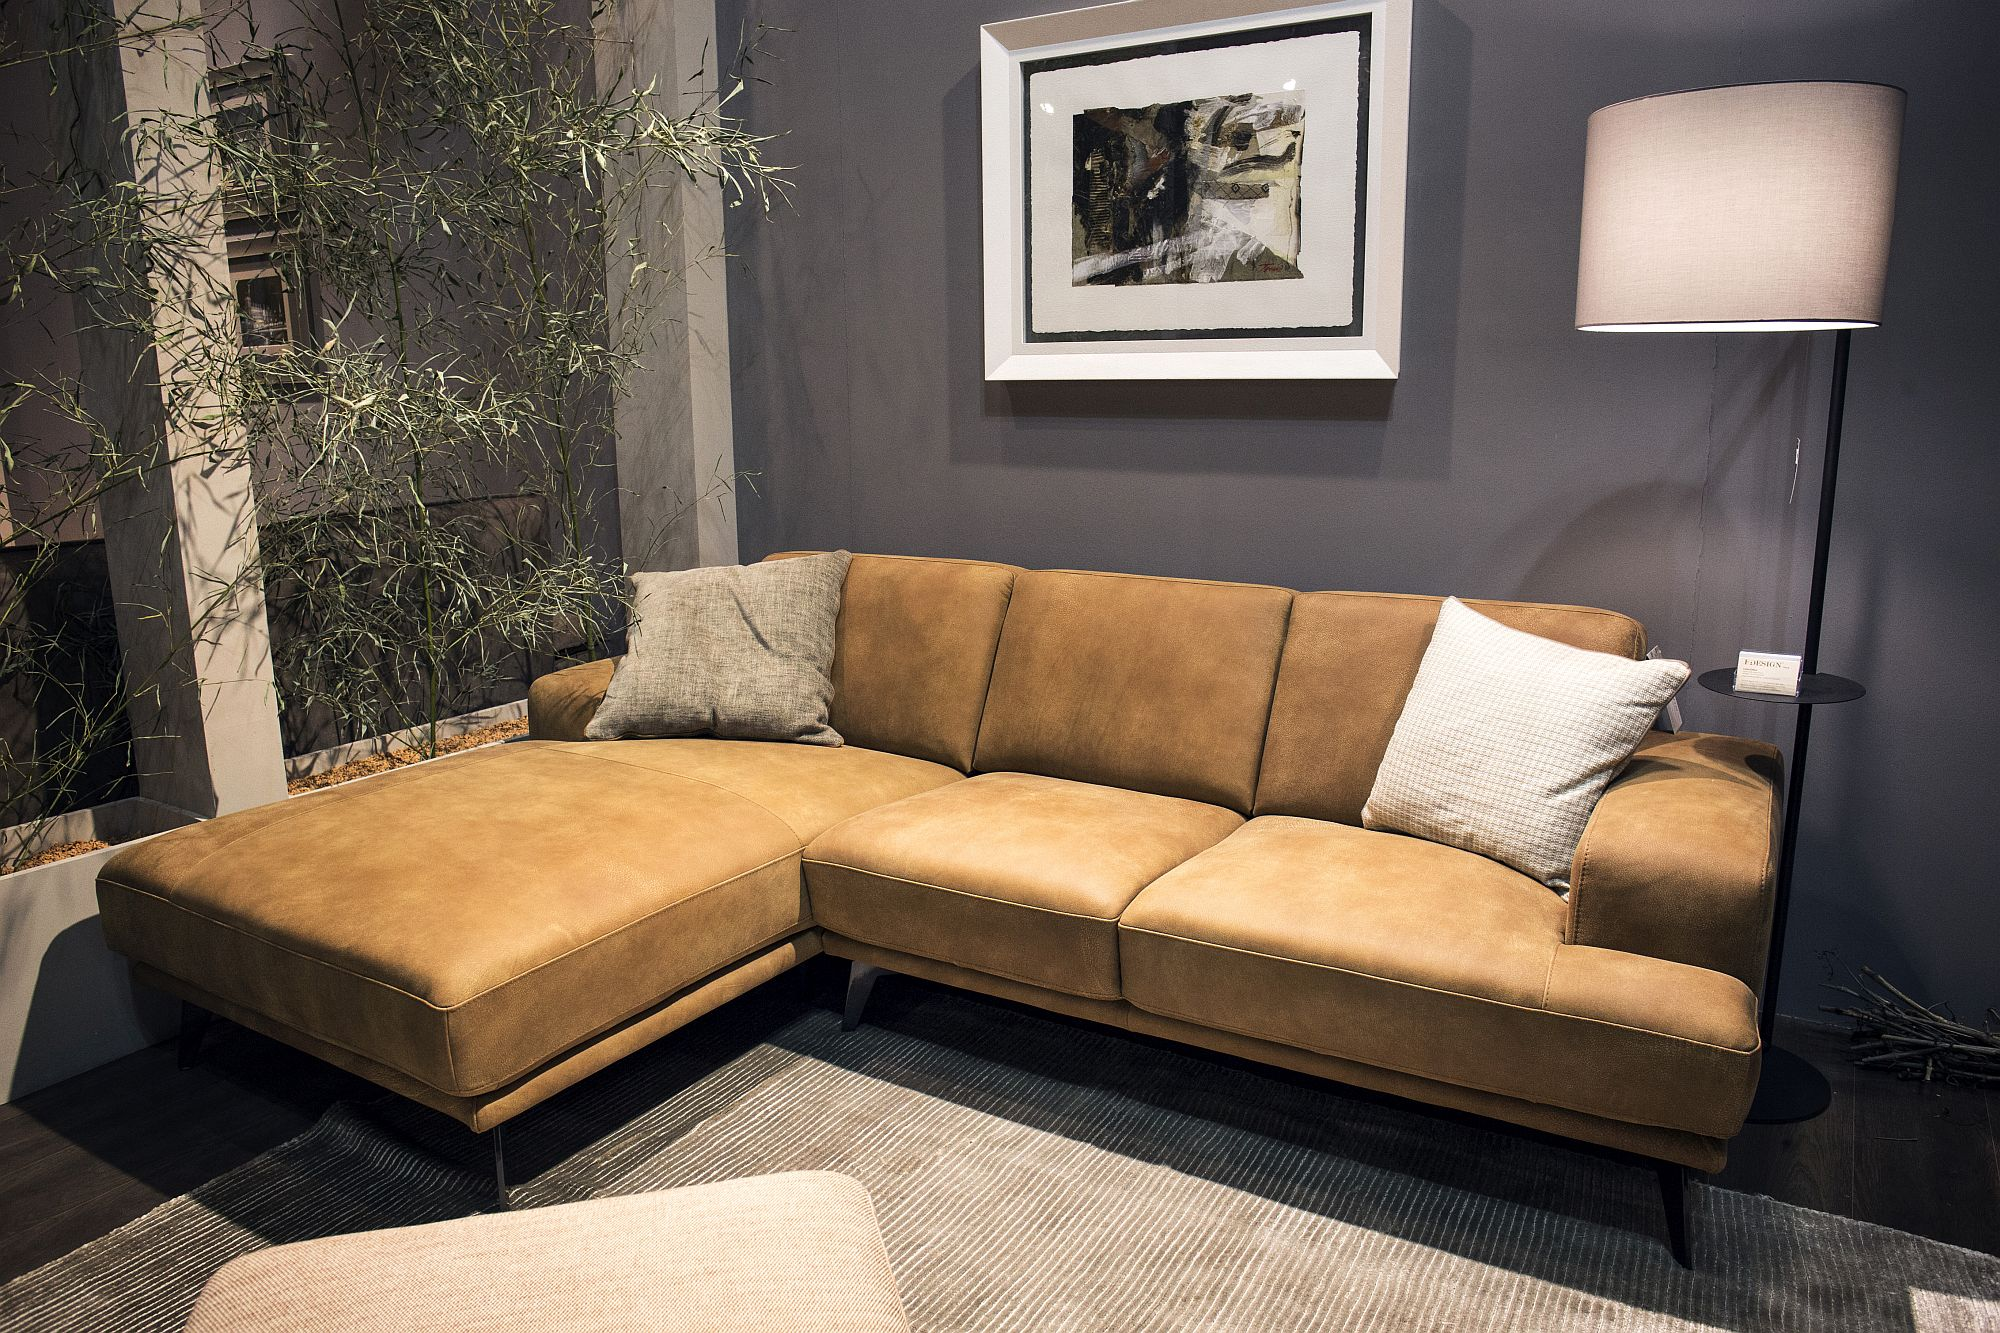 Slim floor lamp in the corner with a large brown sectional next to it